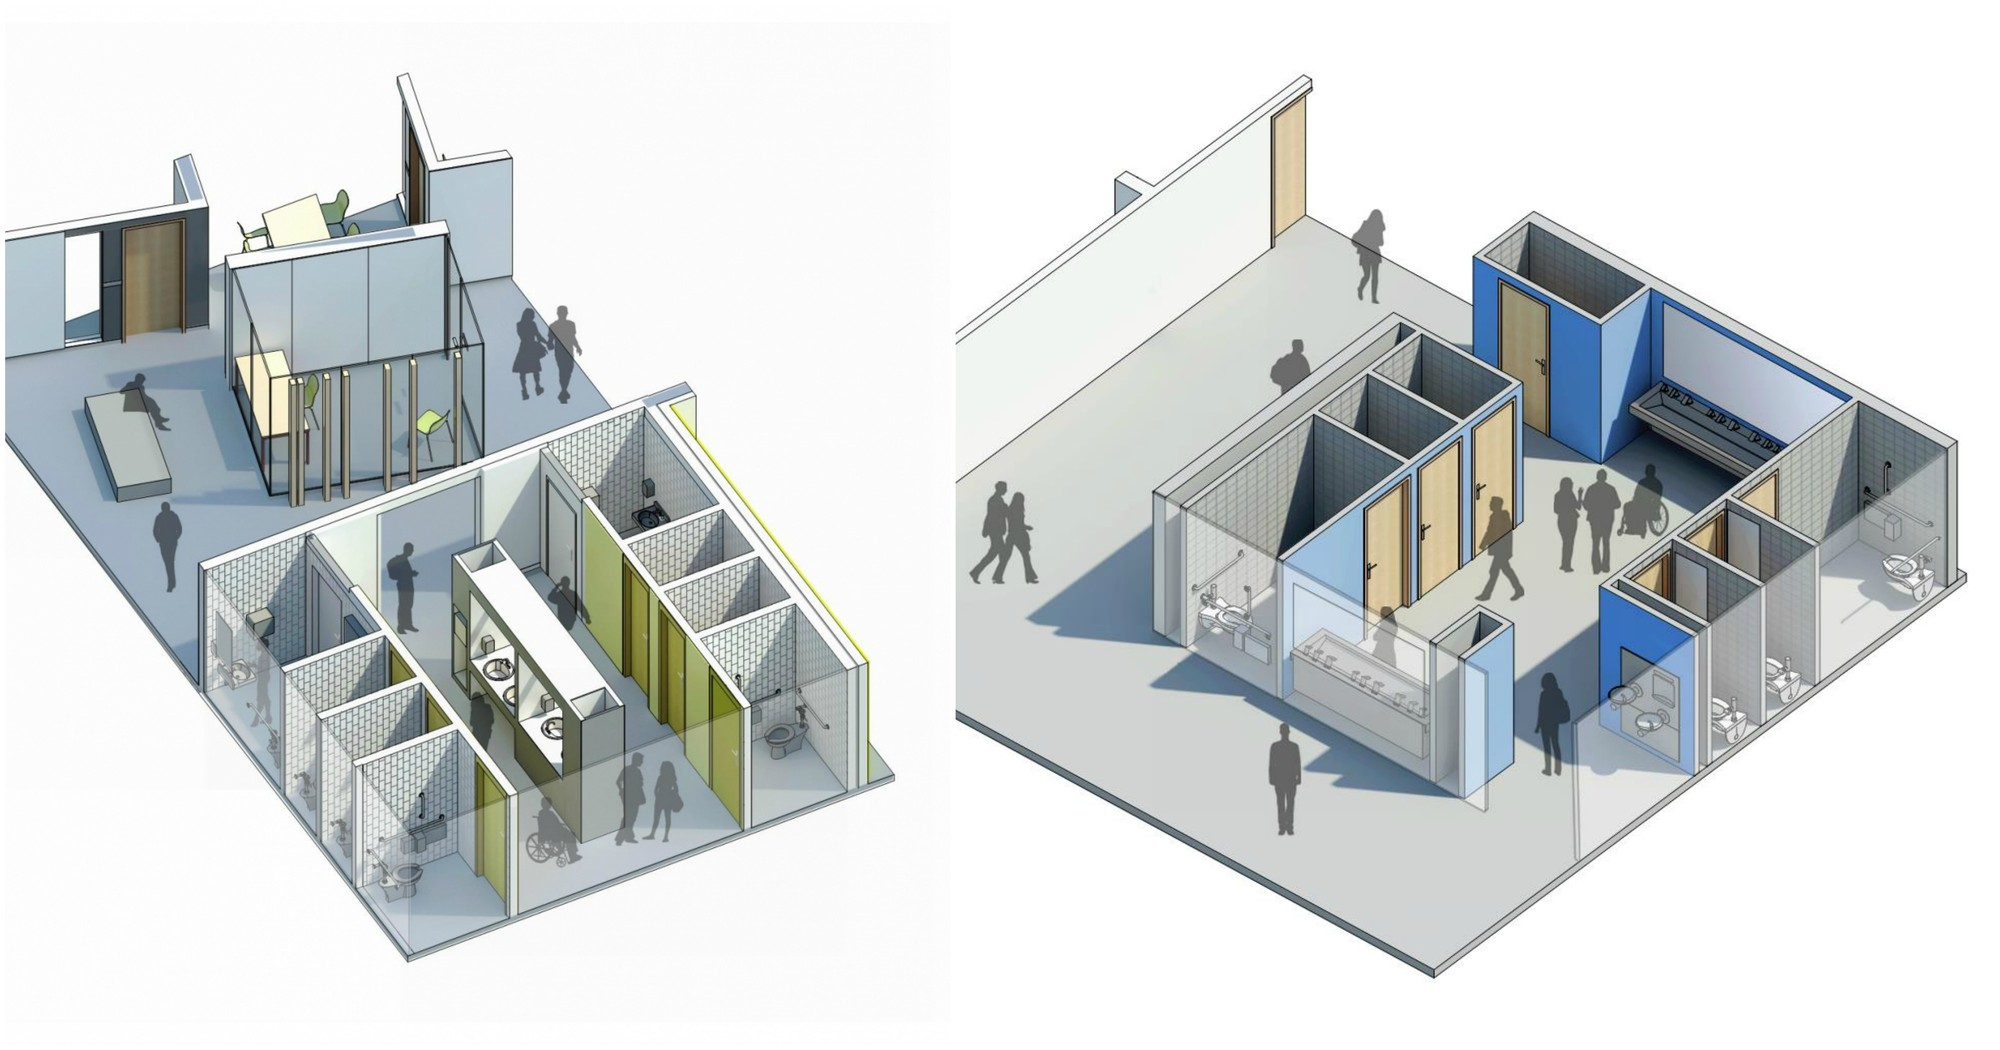 Free Architectural Design Competitions